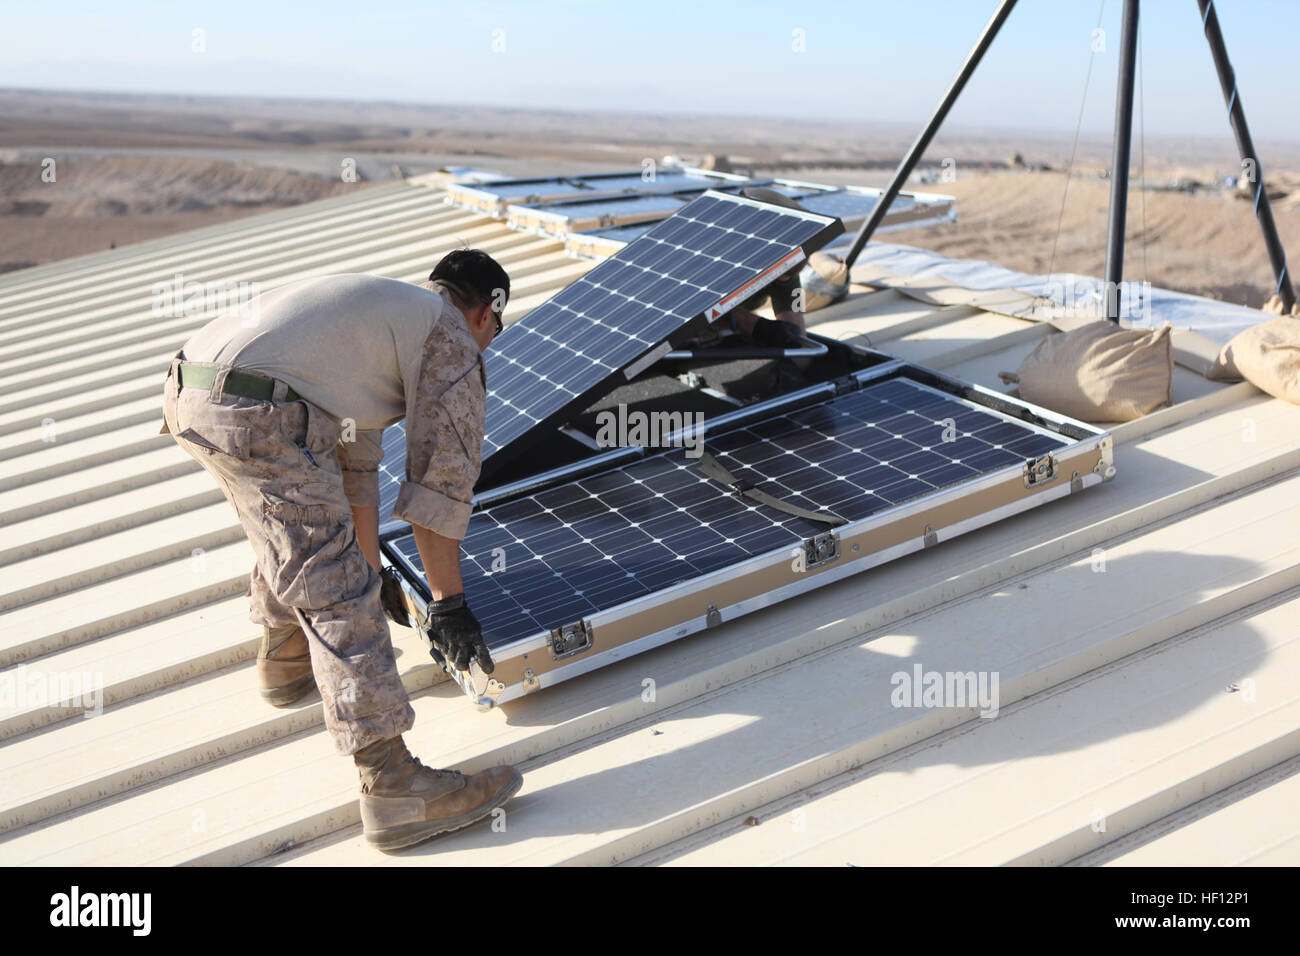 Marine solar panel installations first mate marine inc - U S Marine Cpl Moses E Perez A Field Wireman With Combat Logistics 15